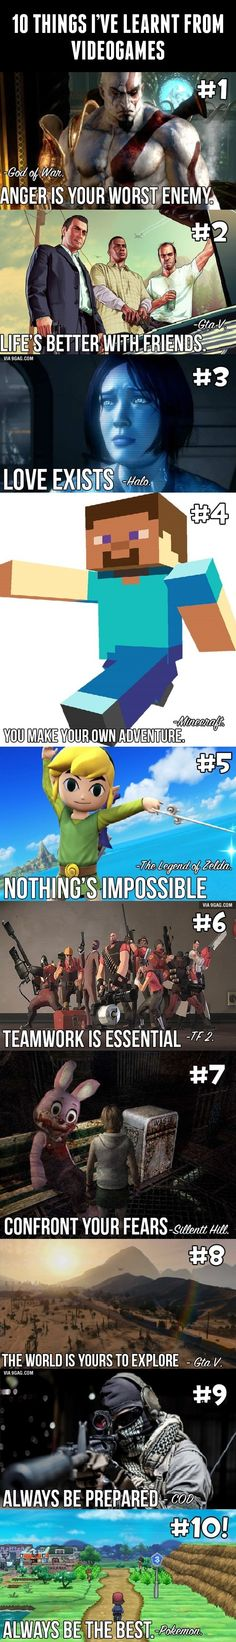 10 Things I've Learnt From Videogames